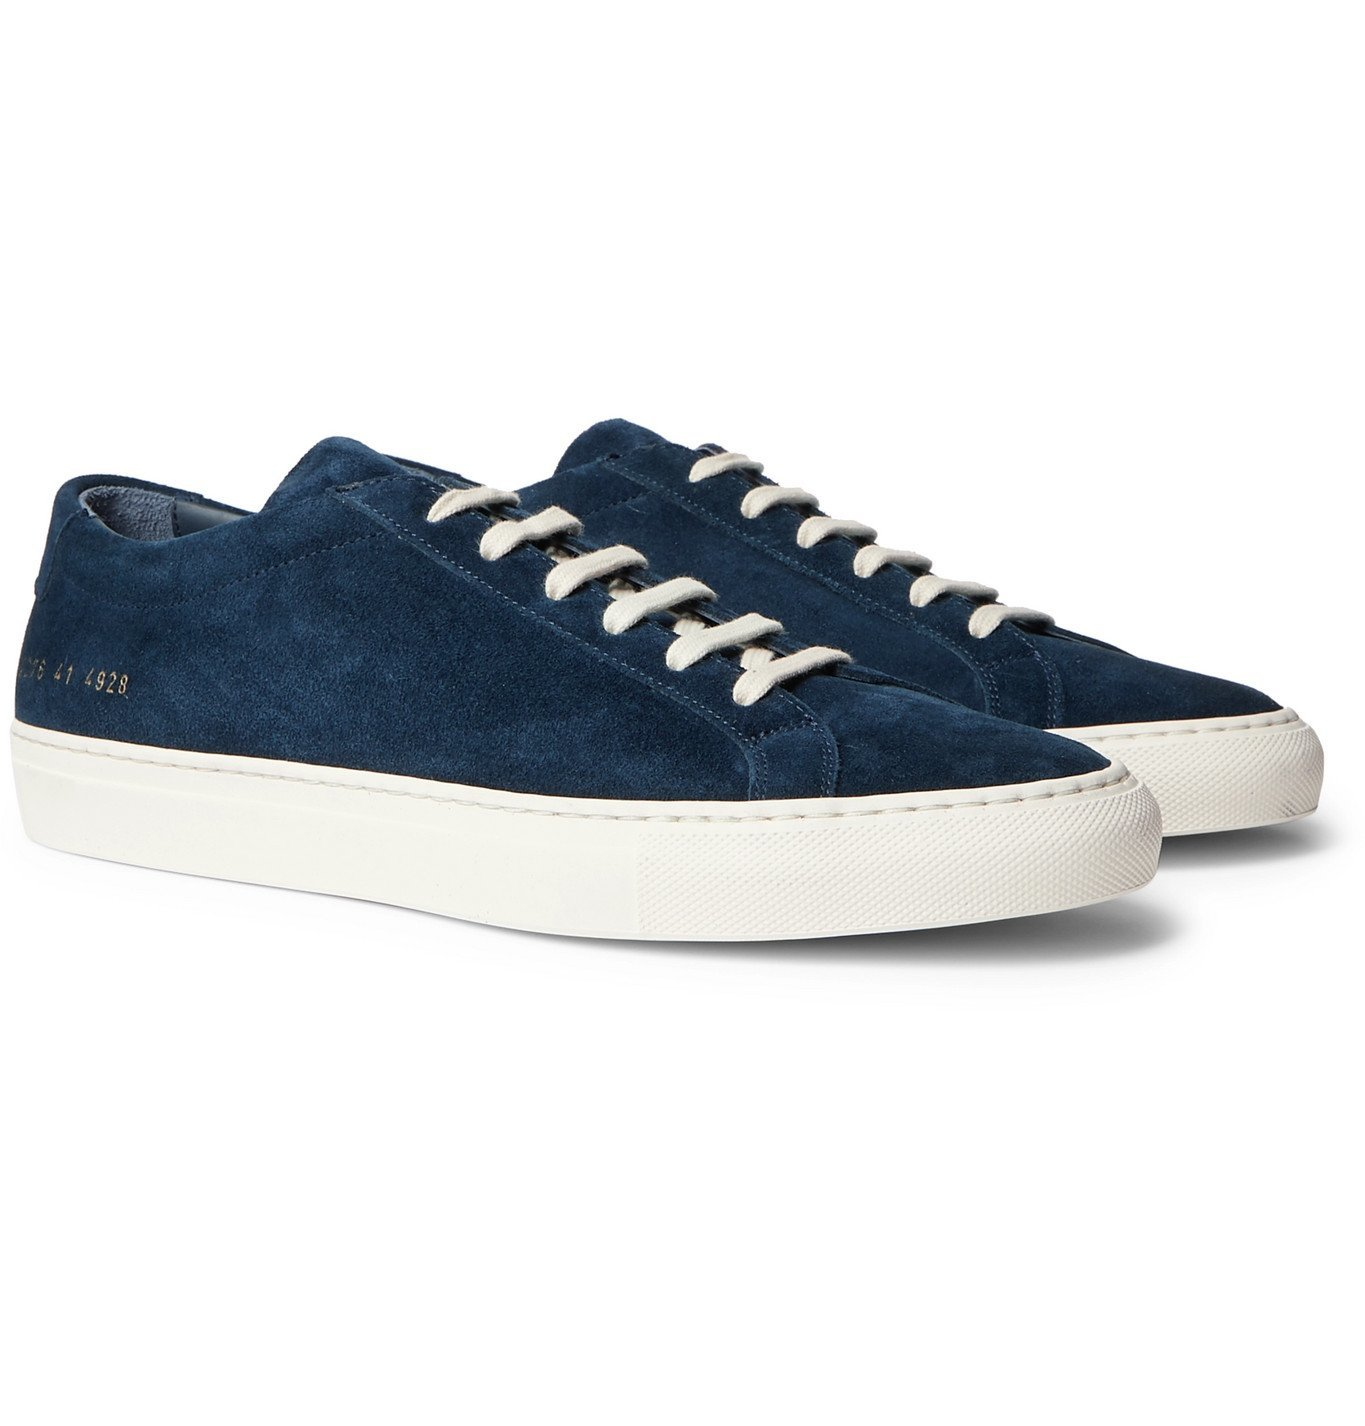 Common Projects - Achilles Suede Sneakers - Blue